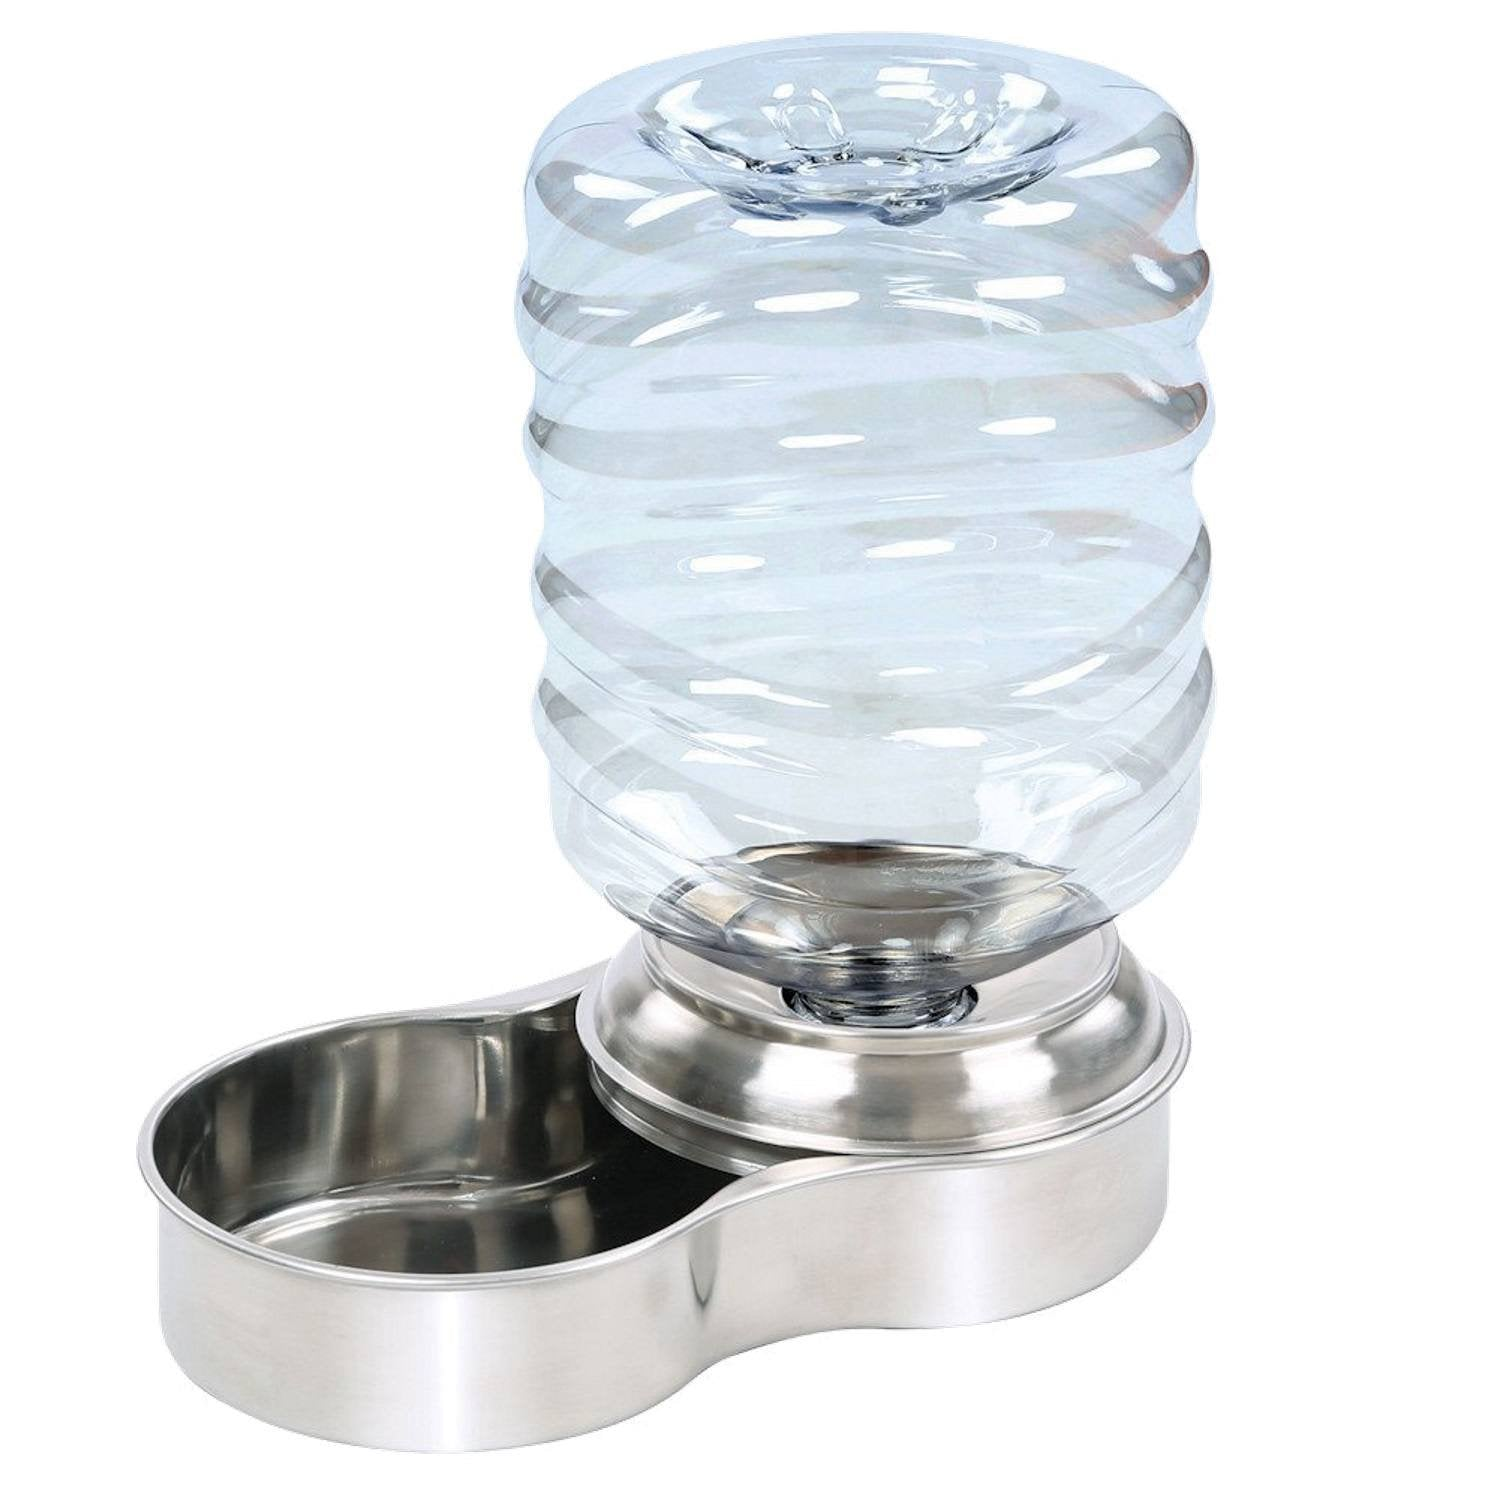 Waterer Stainless Steel Pet Dog Cat Water Fountain Bowl - 1 Gallon Capacity